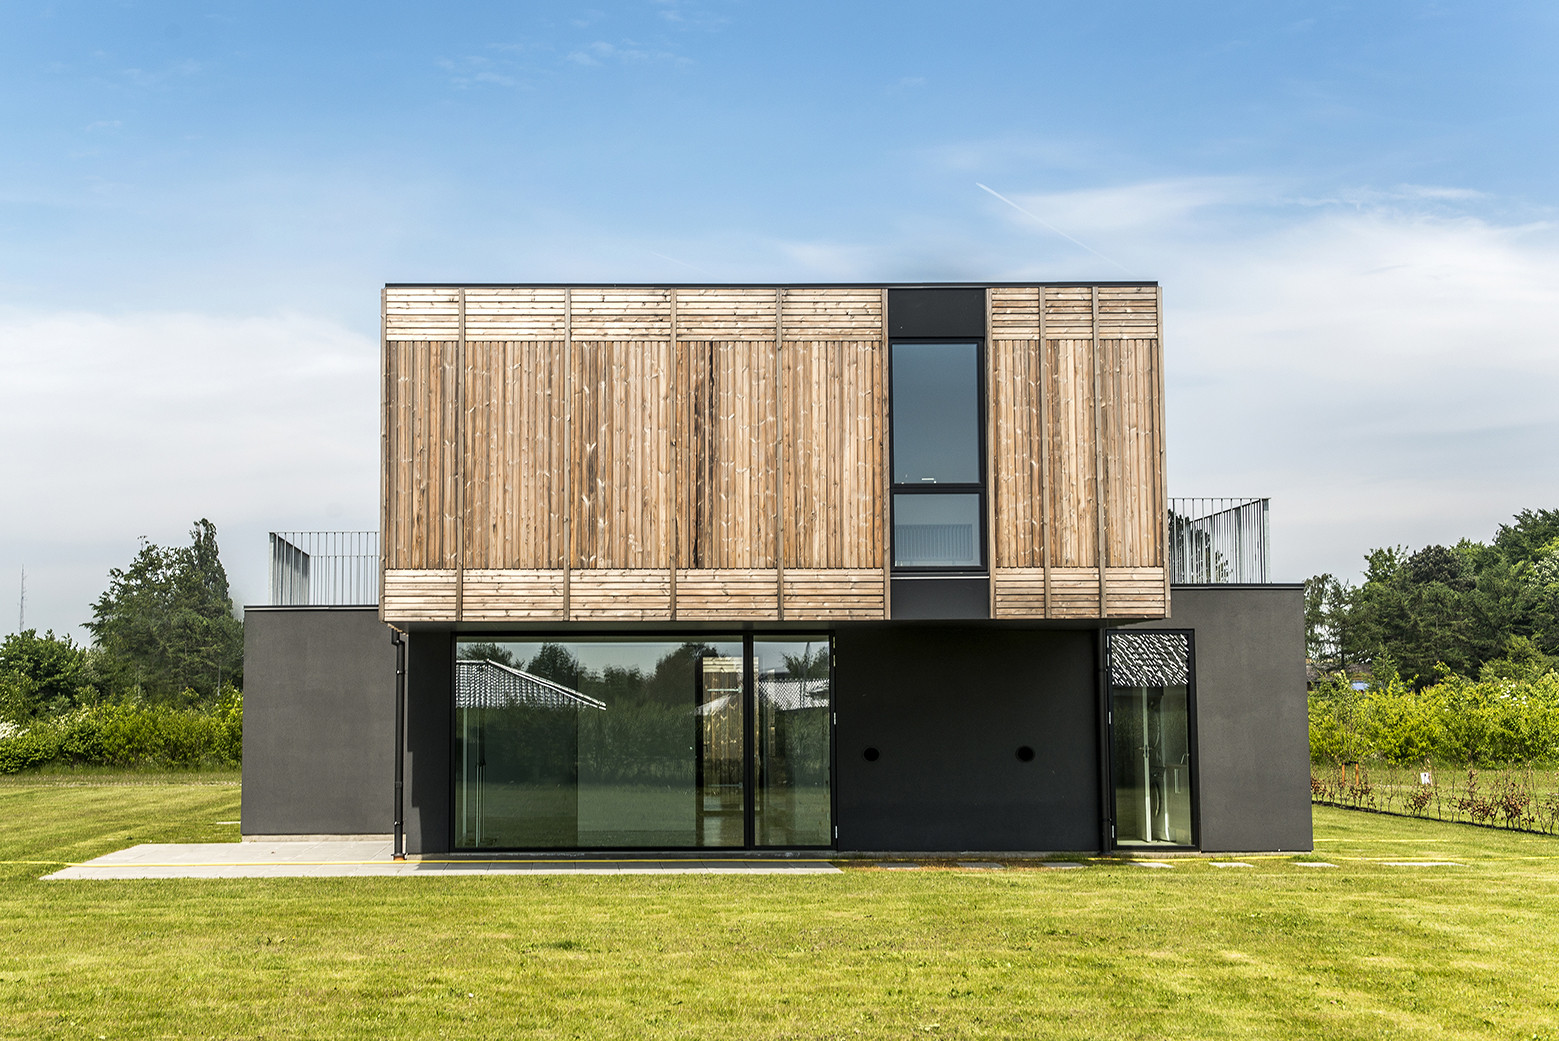 Adaptable house henning larsen architects gxn archdaily for House architects